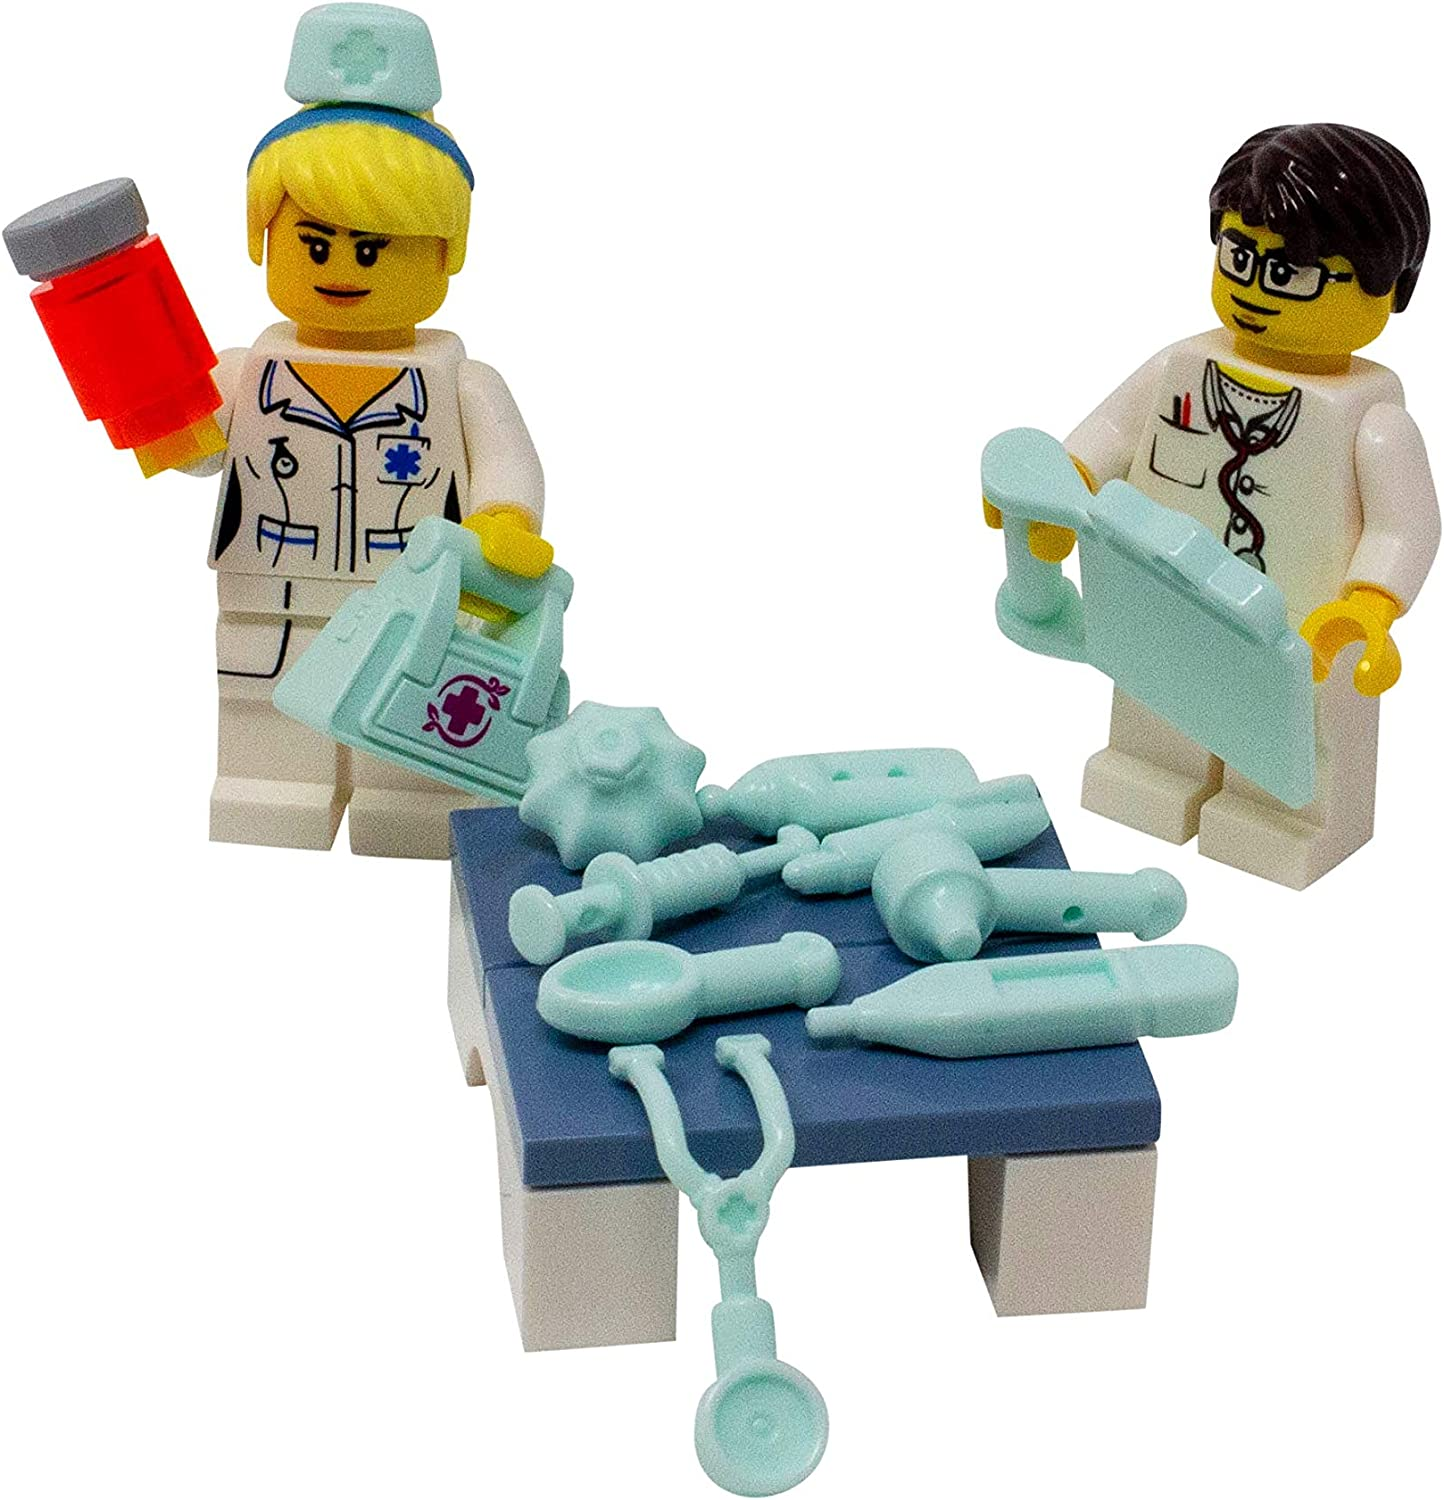 LEGO Doctor and Nurse with Medical Instruments and Bag - Custom Medicine MD, DO, RN Minifigure